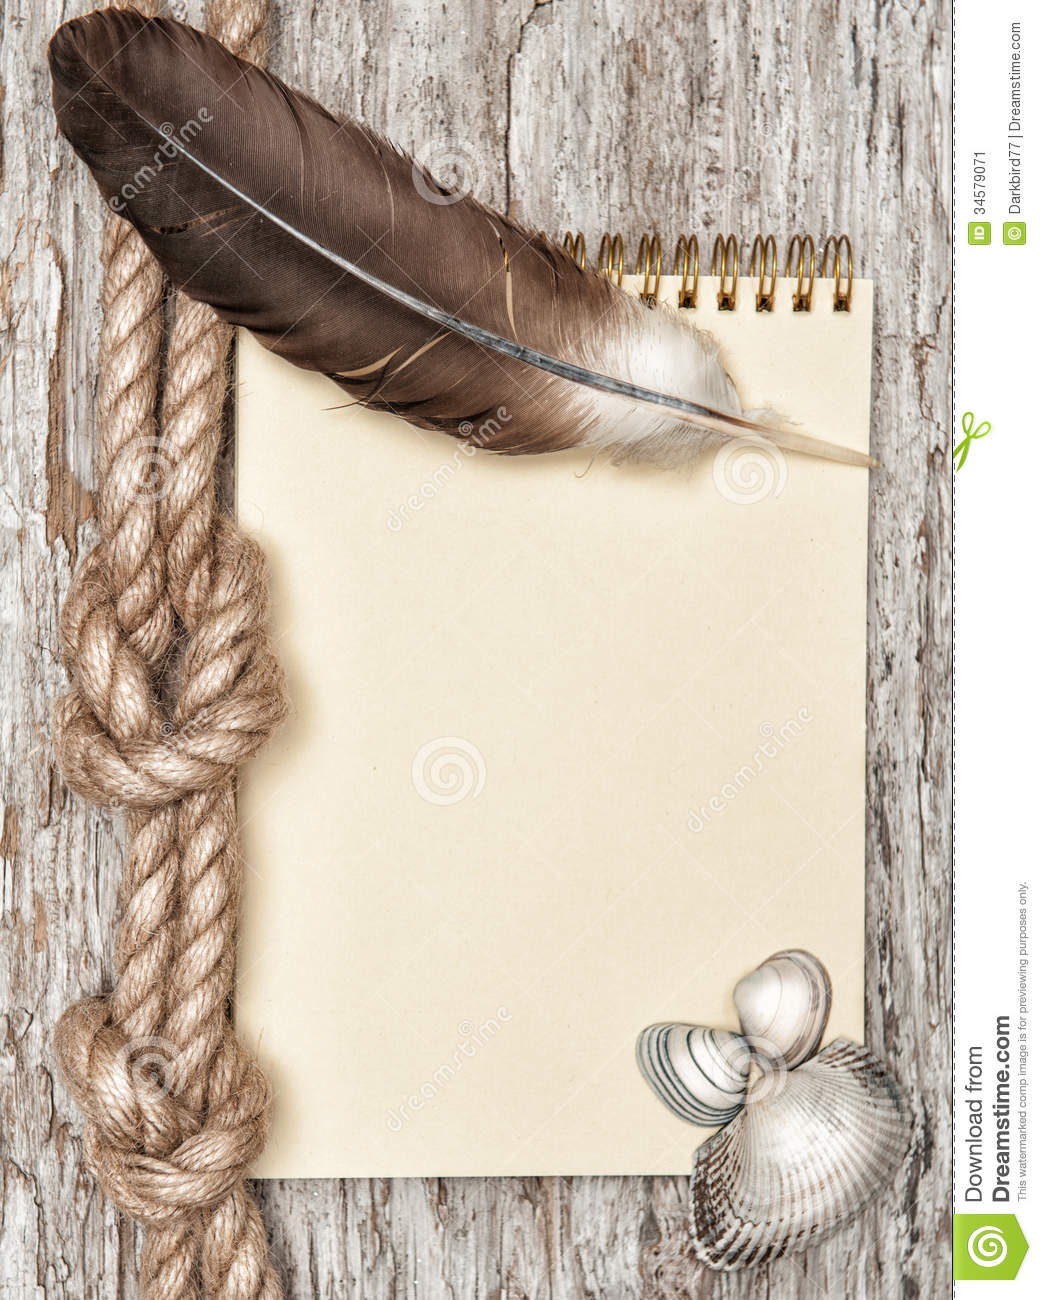 Ship Rope, Shells, Notebook And Wood Background Royalty